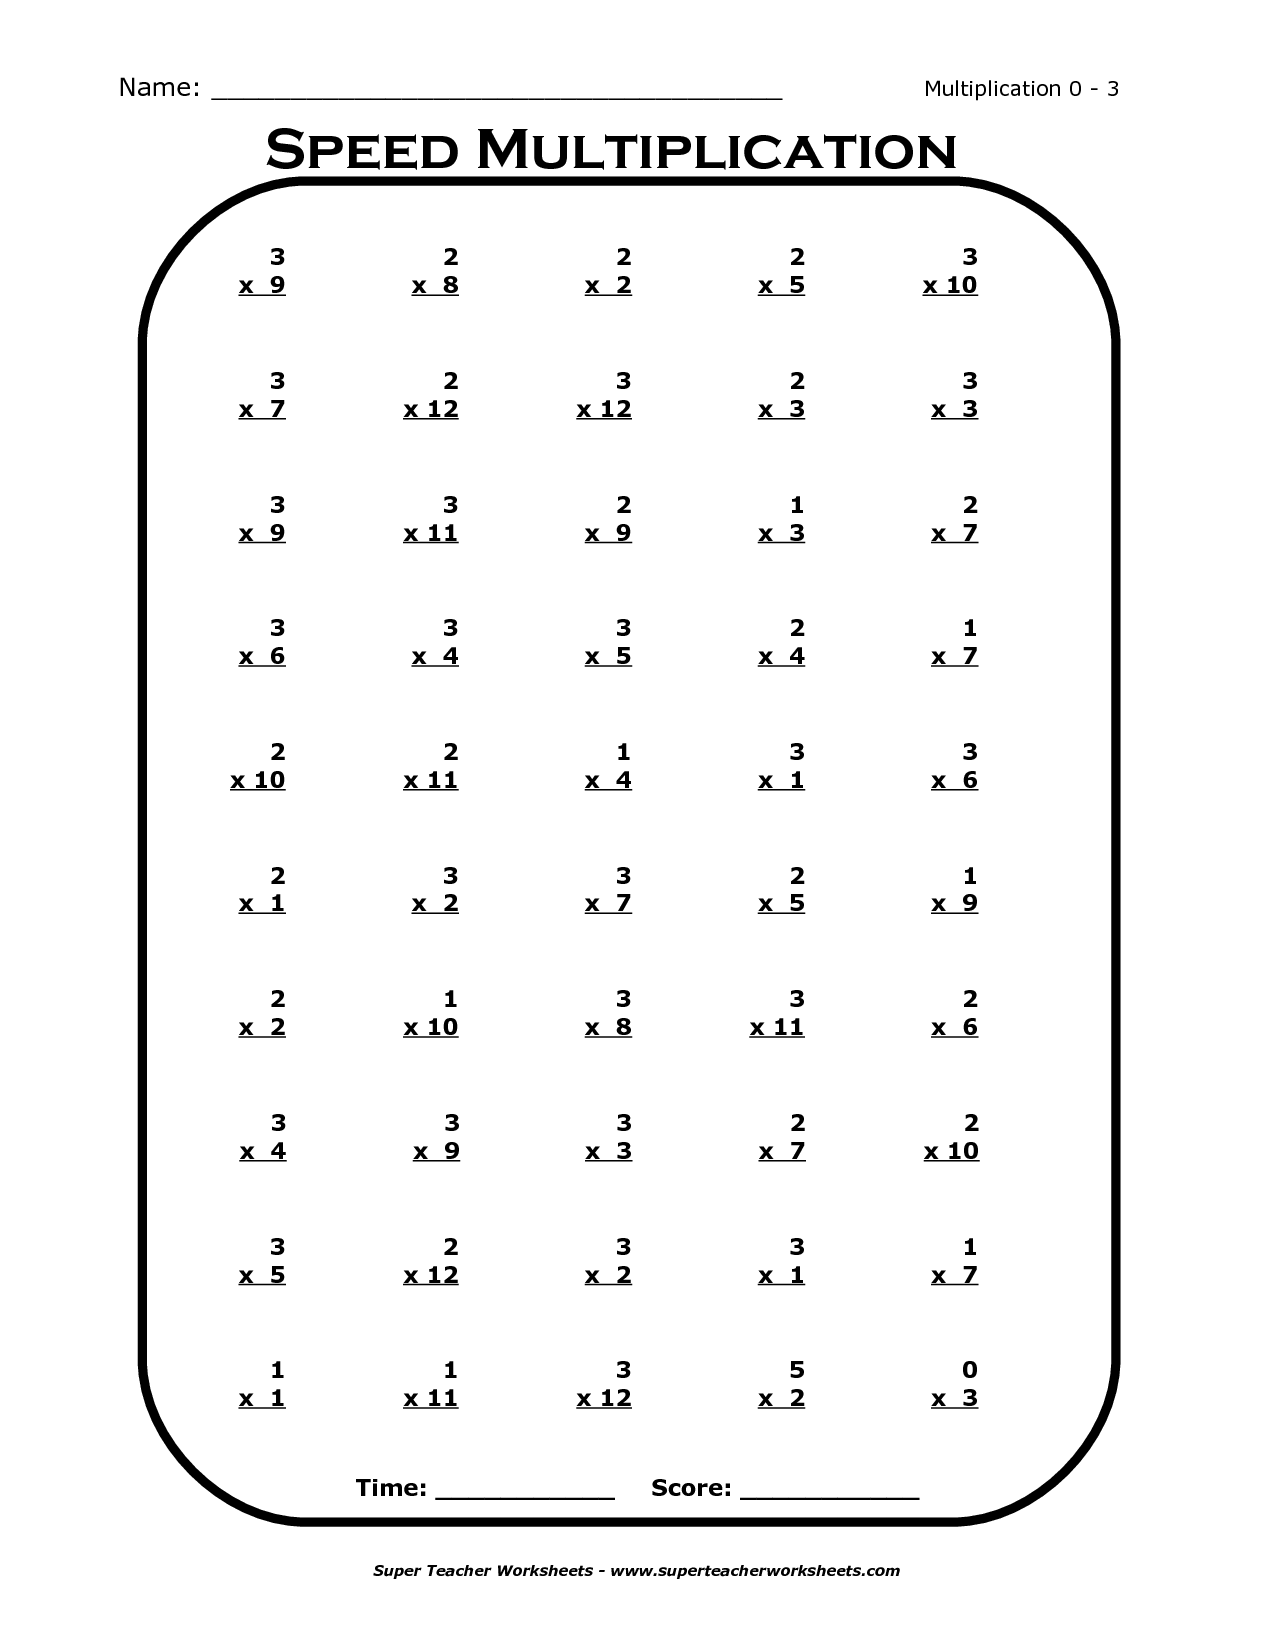 Multiplication Worksheets 2 Times Tables The Best Worksheets Image